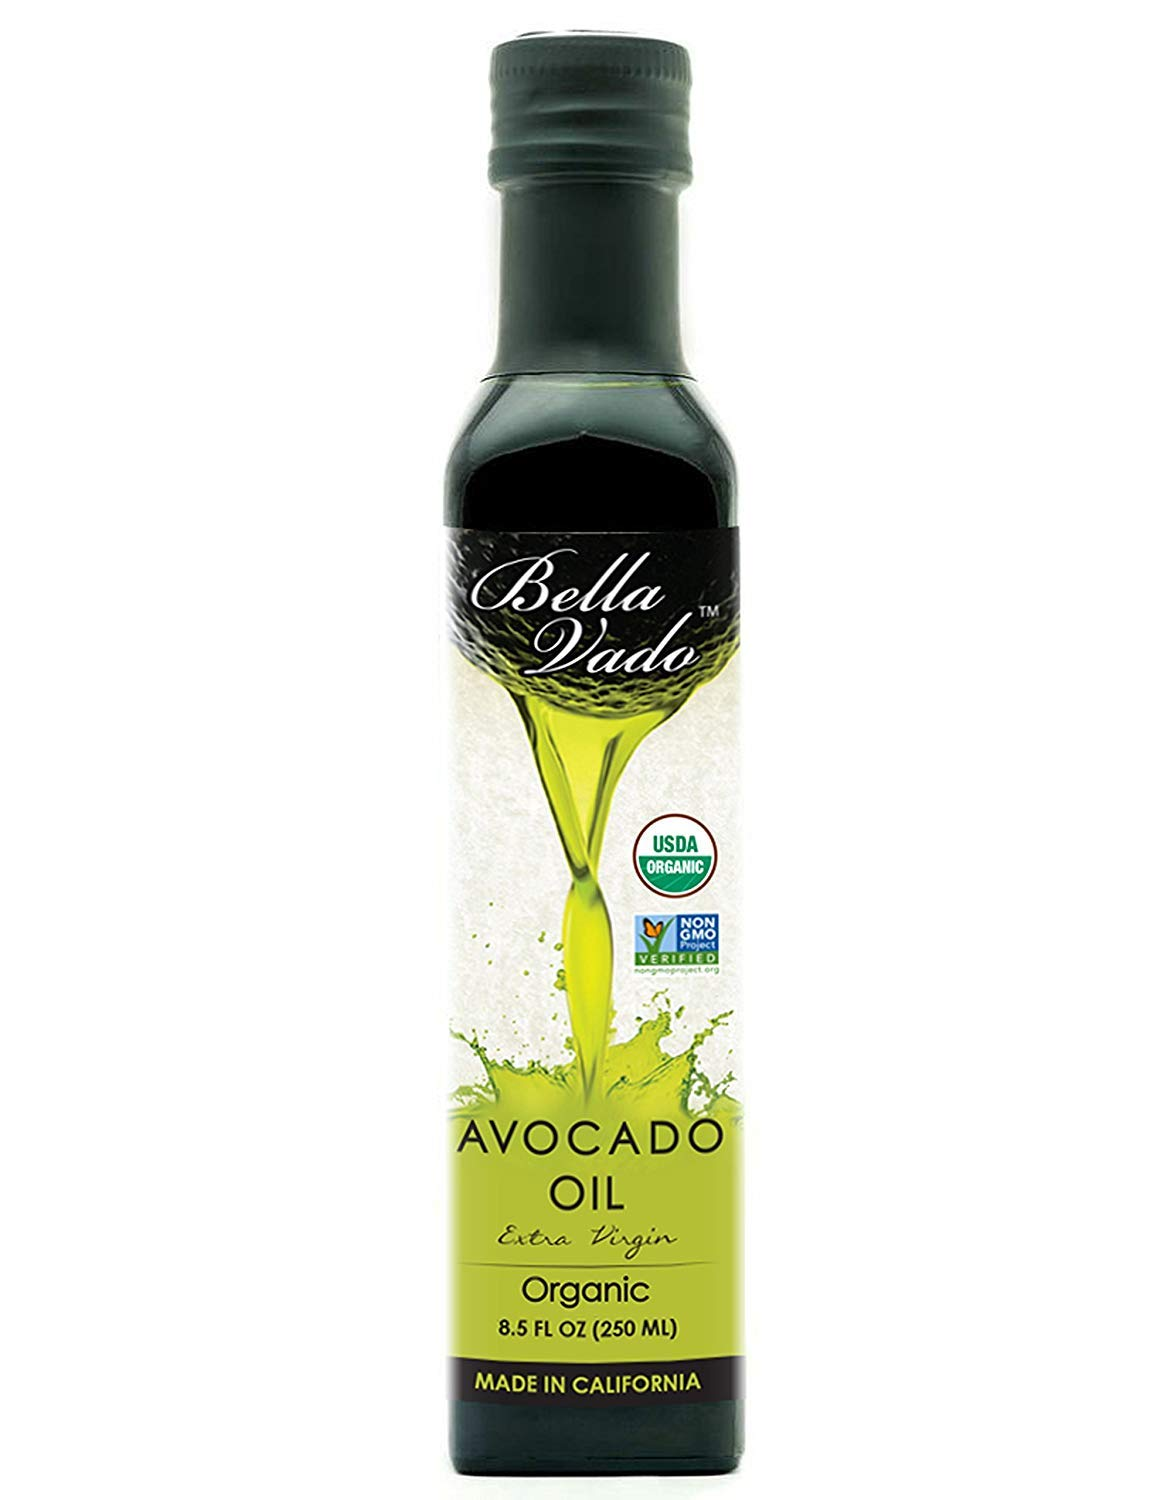 Case of 6 - Bella Vado Avocado Oil, USDA Organic, 8.5 Ounce by Bella Vado